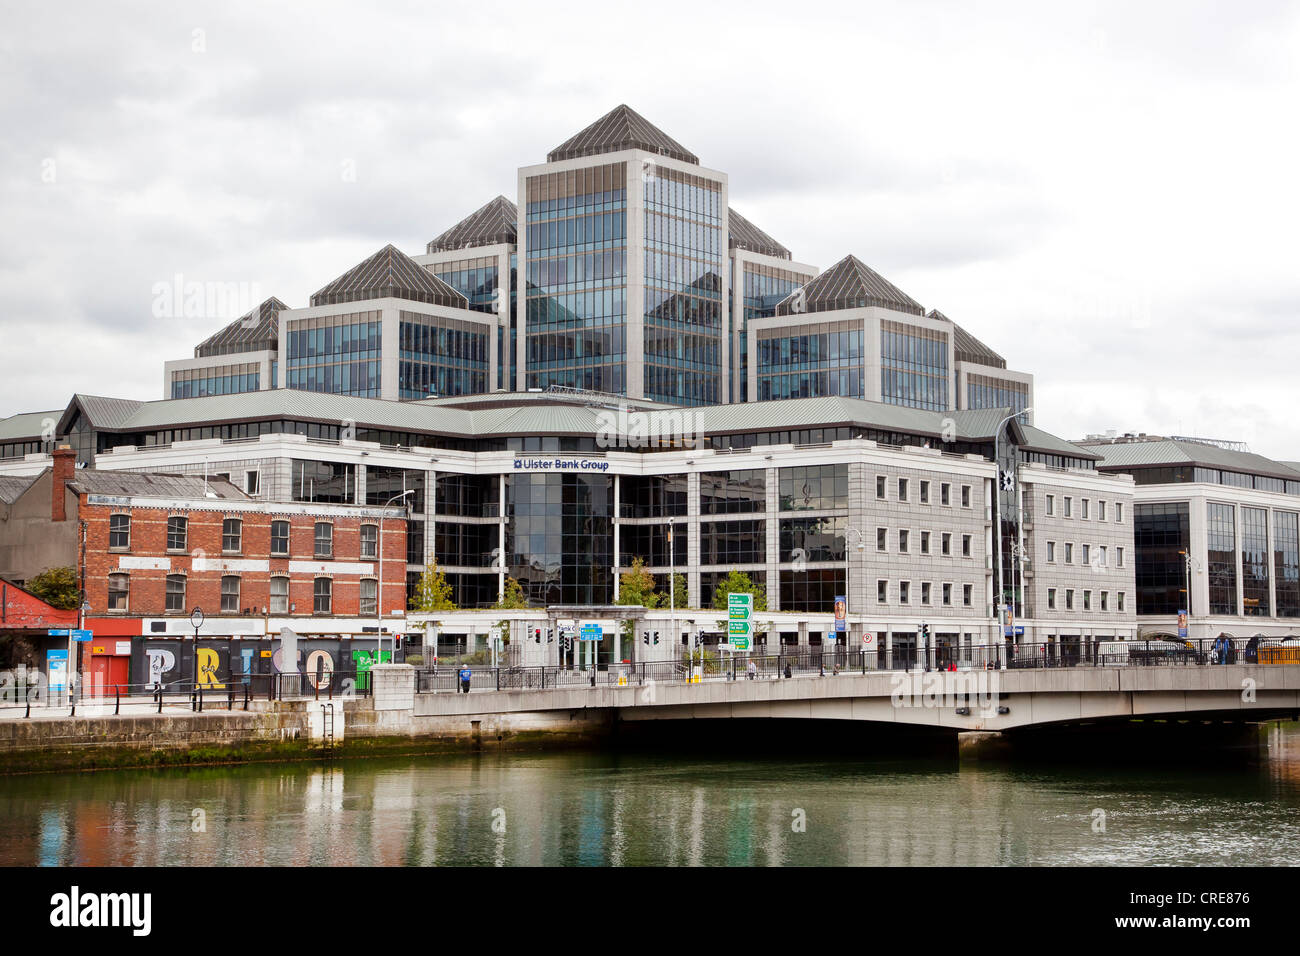 Headquarters of the Ulster Bank Group on the River Liffey in the financial district in Dublin, Ireland, Europe - Stock Image